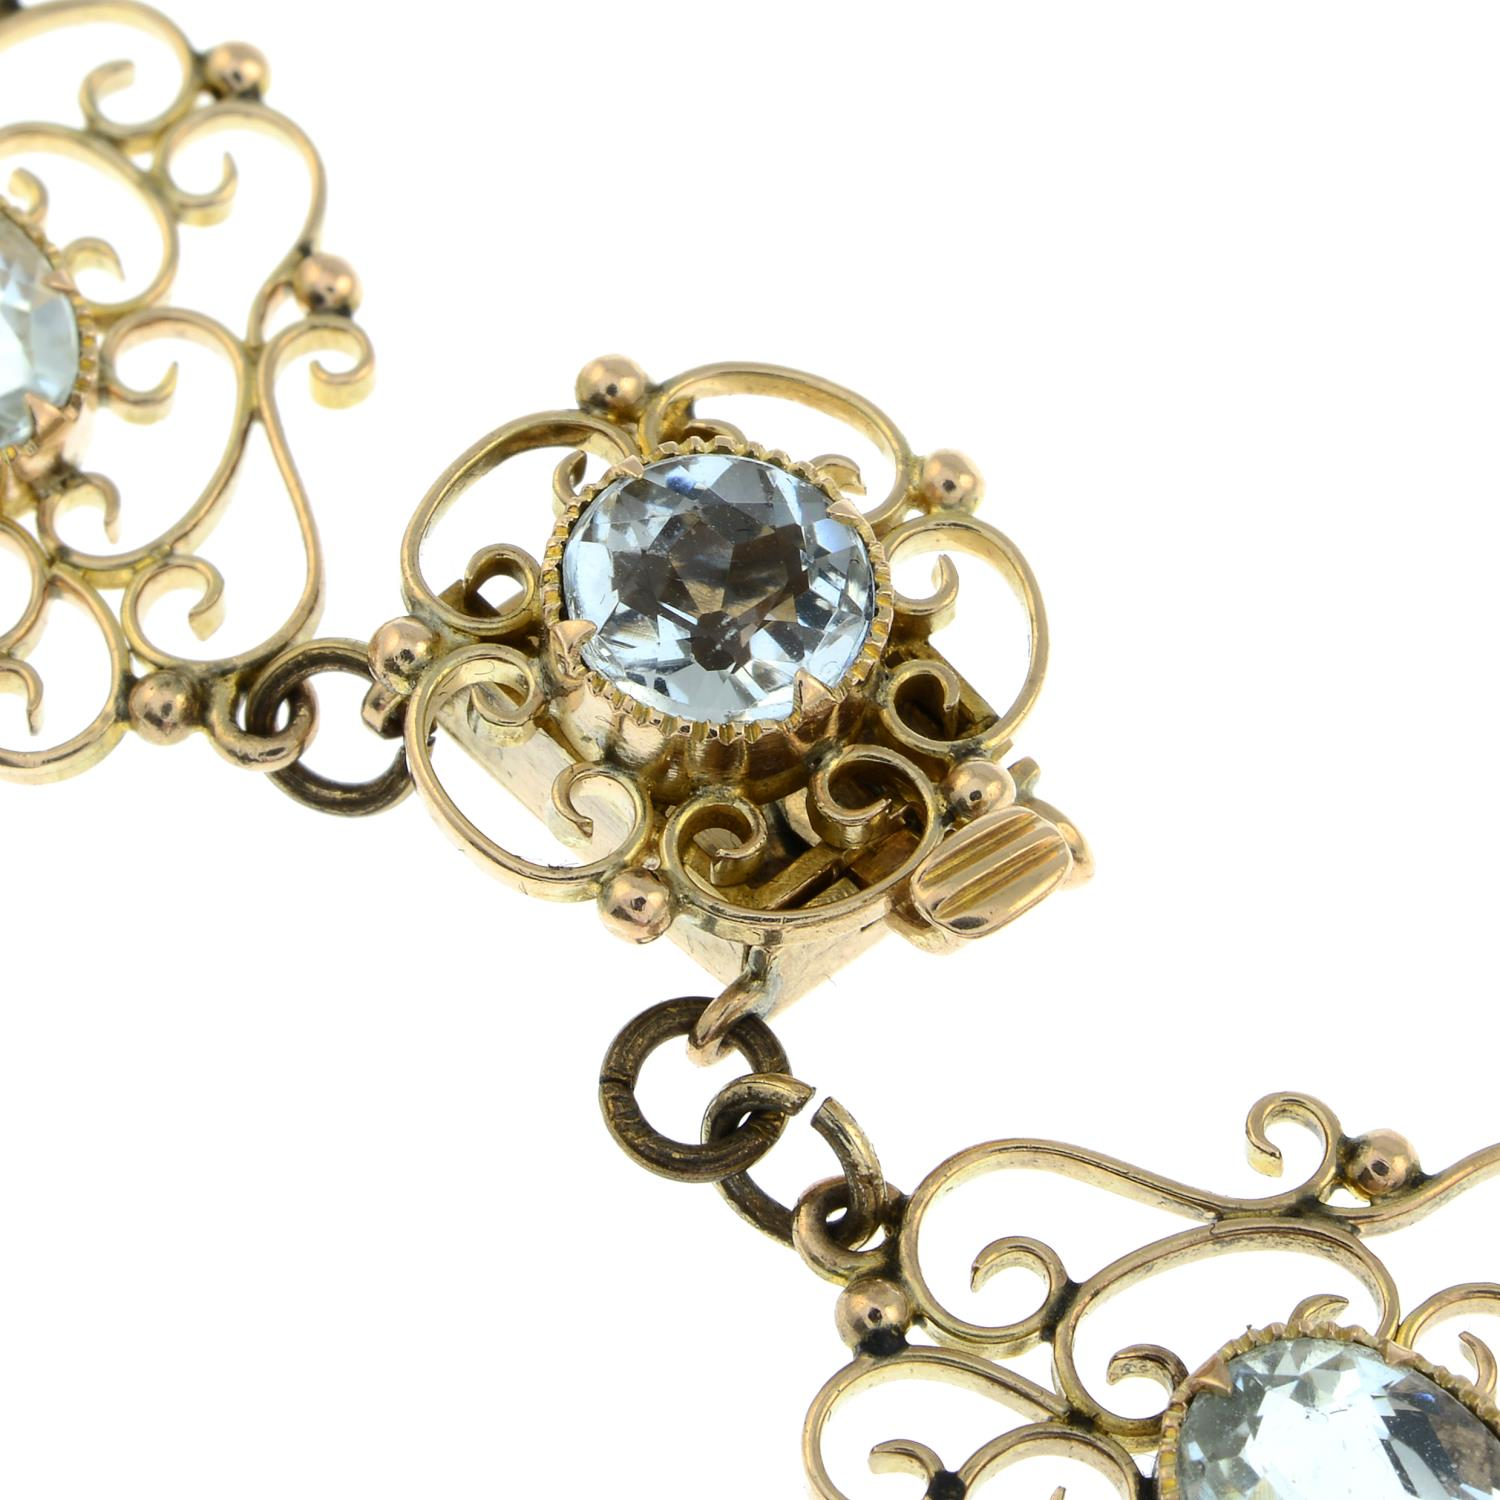 An early 20th century Arts & Crafts gold aquamarine necklace.Length 43.5cms. - Image 5 of 6